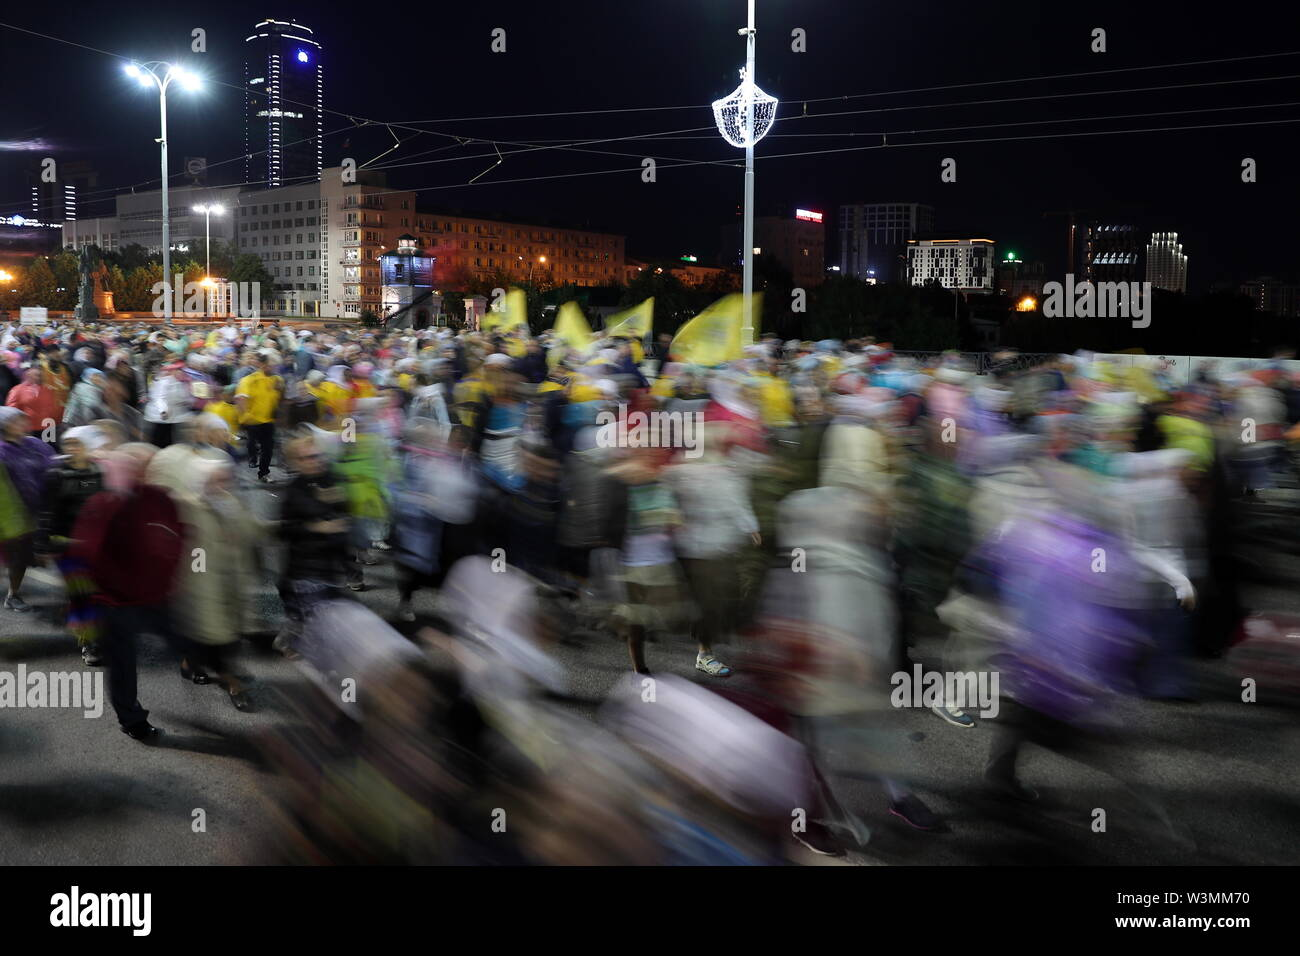 Yekaterinburg, Russia. 17th July, 2019. YEKATERINBURG, RUSSIA - JULY 17, 2019: Believers take part in a religious procession in memory of the Russian royal family from the Church of All Saints in Yekaterinburg to the Ganina Yama Monastery in the Sverdlovsk Region. Emperor Nicholas II of Russia and his family were executed on July 17, 1918. The procession is held as part of the Tsar Days Orthodox Culture Festival. Donat Sorokin/TASS Credit: ITAR-TASS News Agency/Alamy Live News - Stock Image